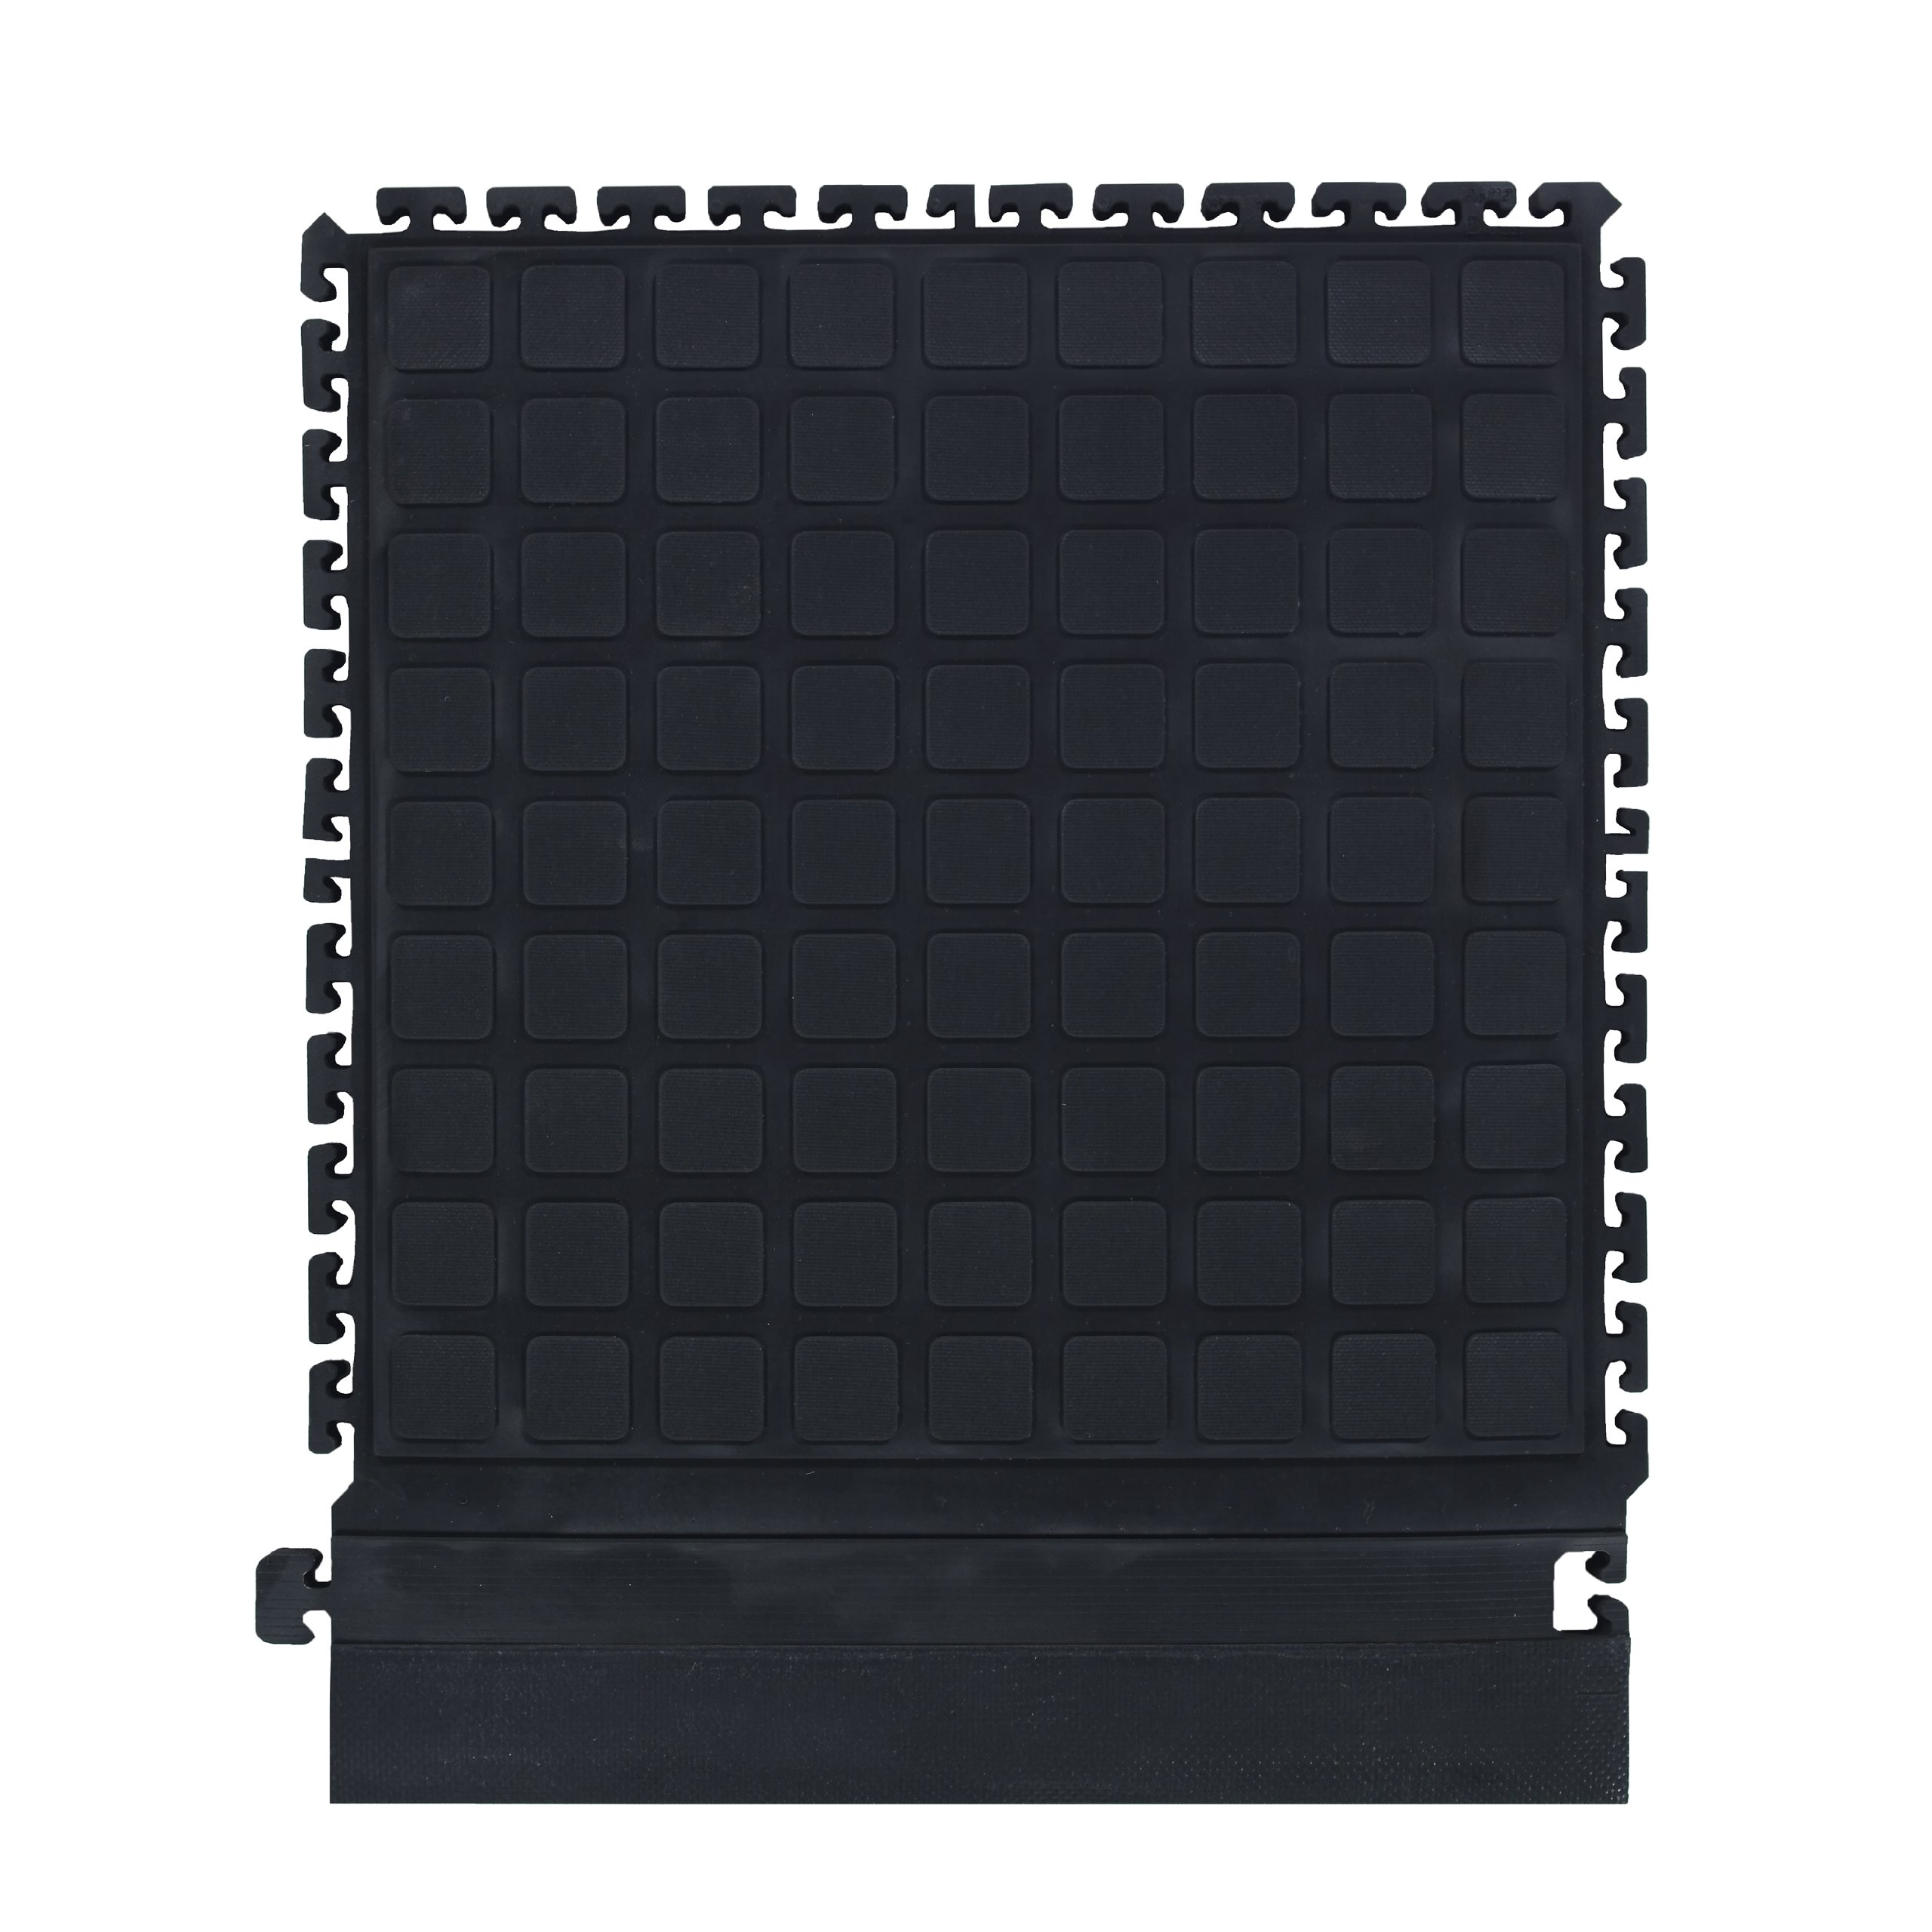 M+A Matting 522 Nitrile Rubber Hog Heaven Modular Tile II with Black Strip Side Border, 21.87'' Length x 18'' Width x 3/4'' Thick